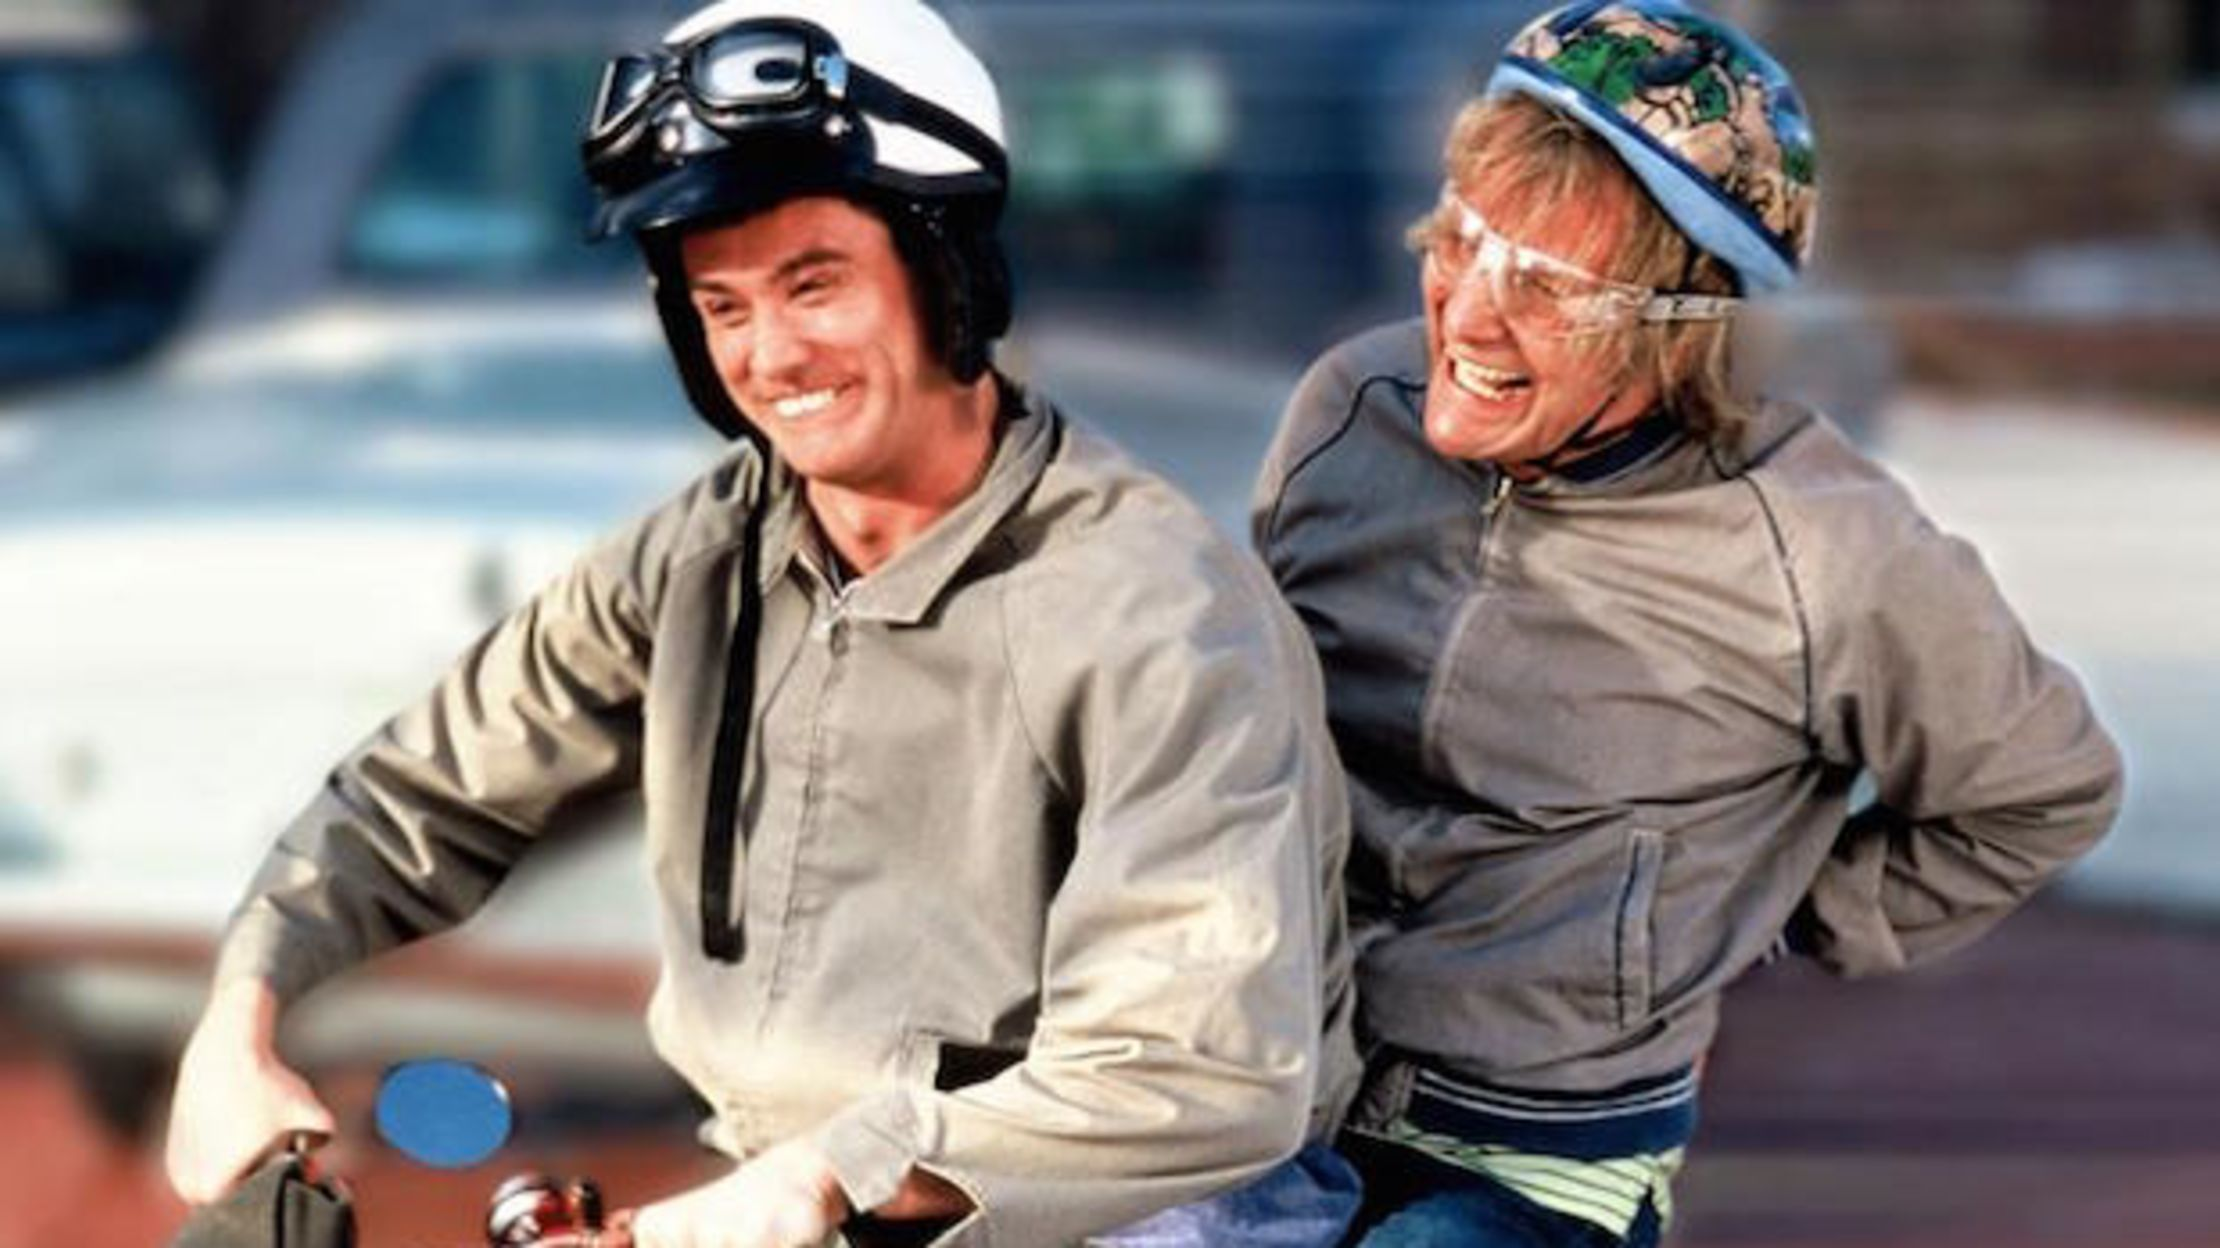 5ab68c5c5388b 15 Brilliant Facts About Dumb and Dumber | Mental Floss